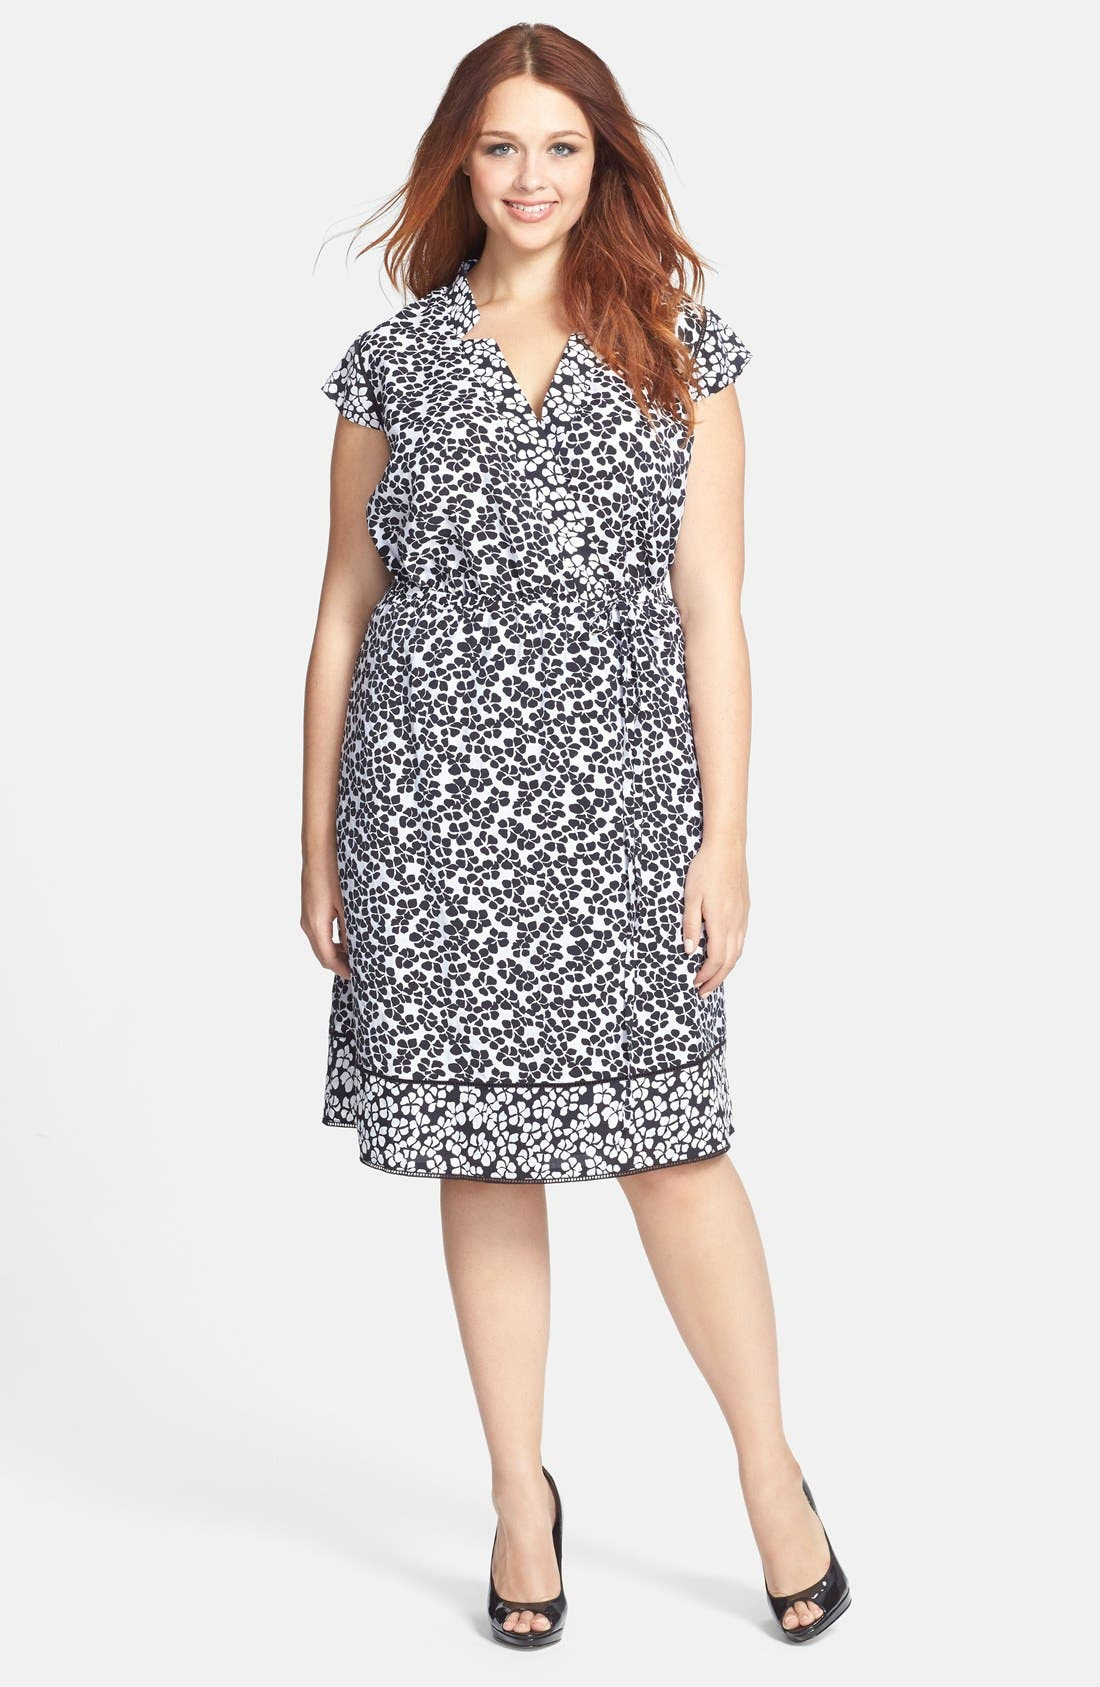 Alternate Image 1 Selected - Adrianna Papell Floral Print Faux Wrap Dress (Plus Size)